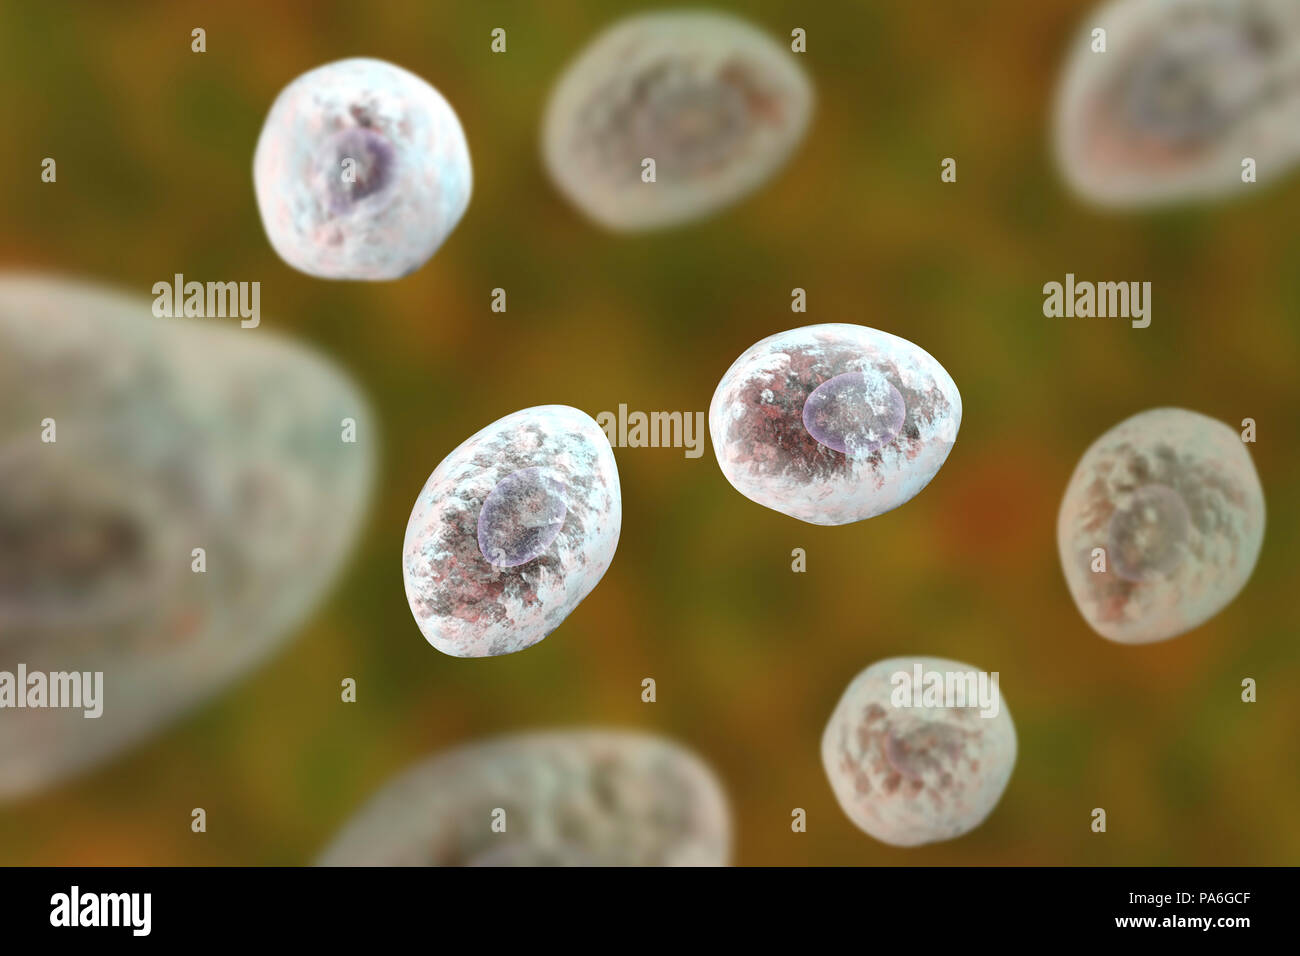 Pneumocystis jirovecii (formerly known as Pneumocystis